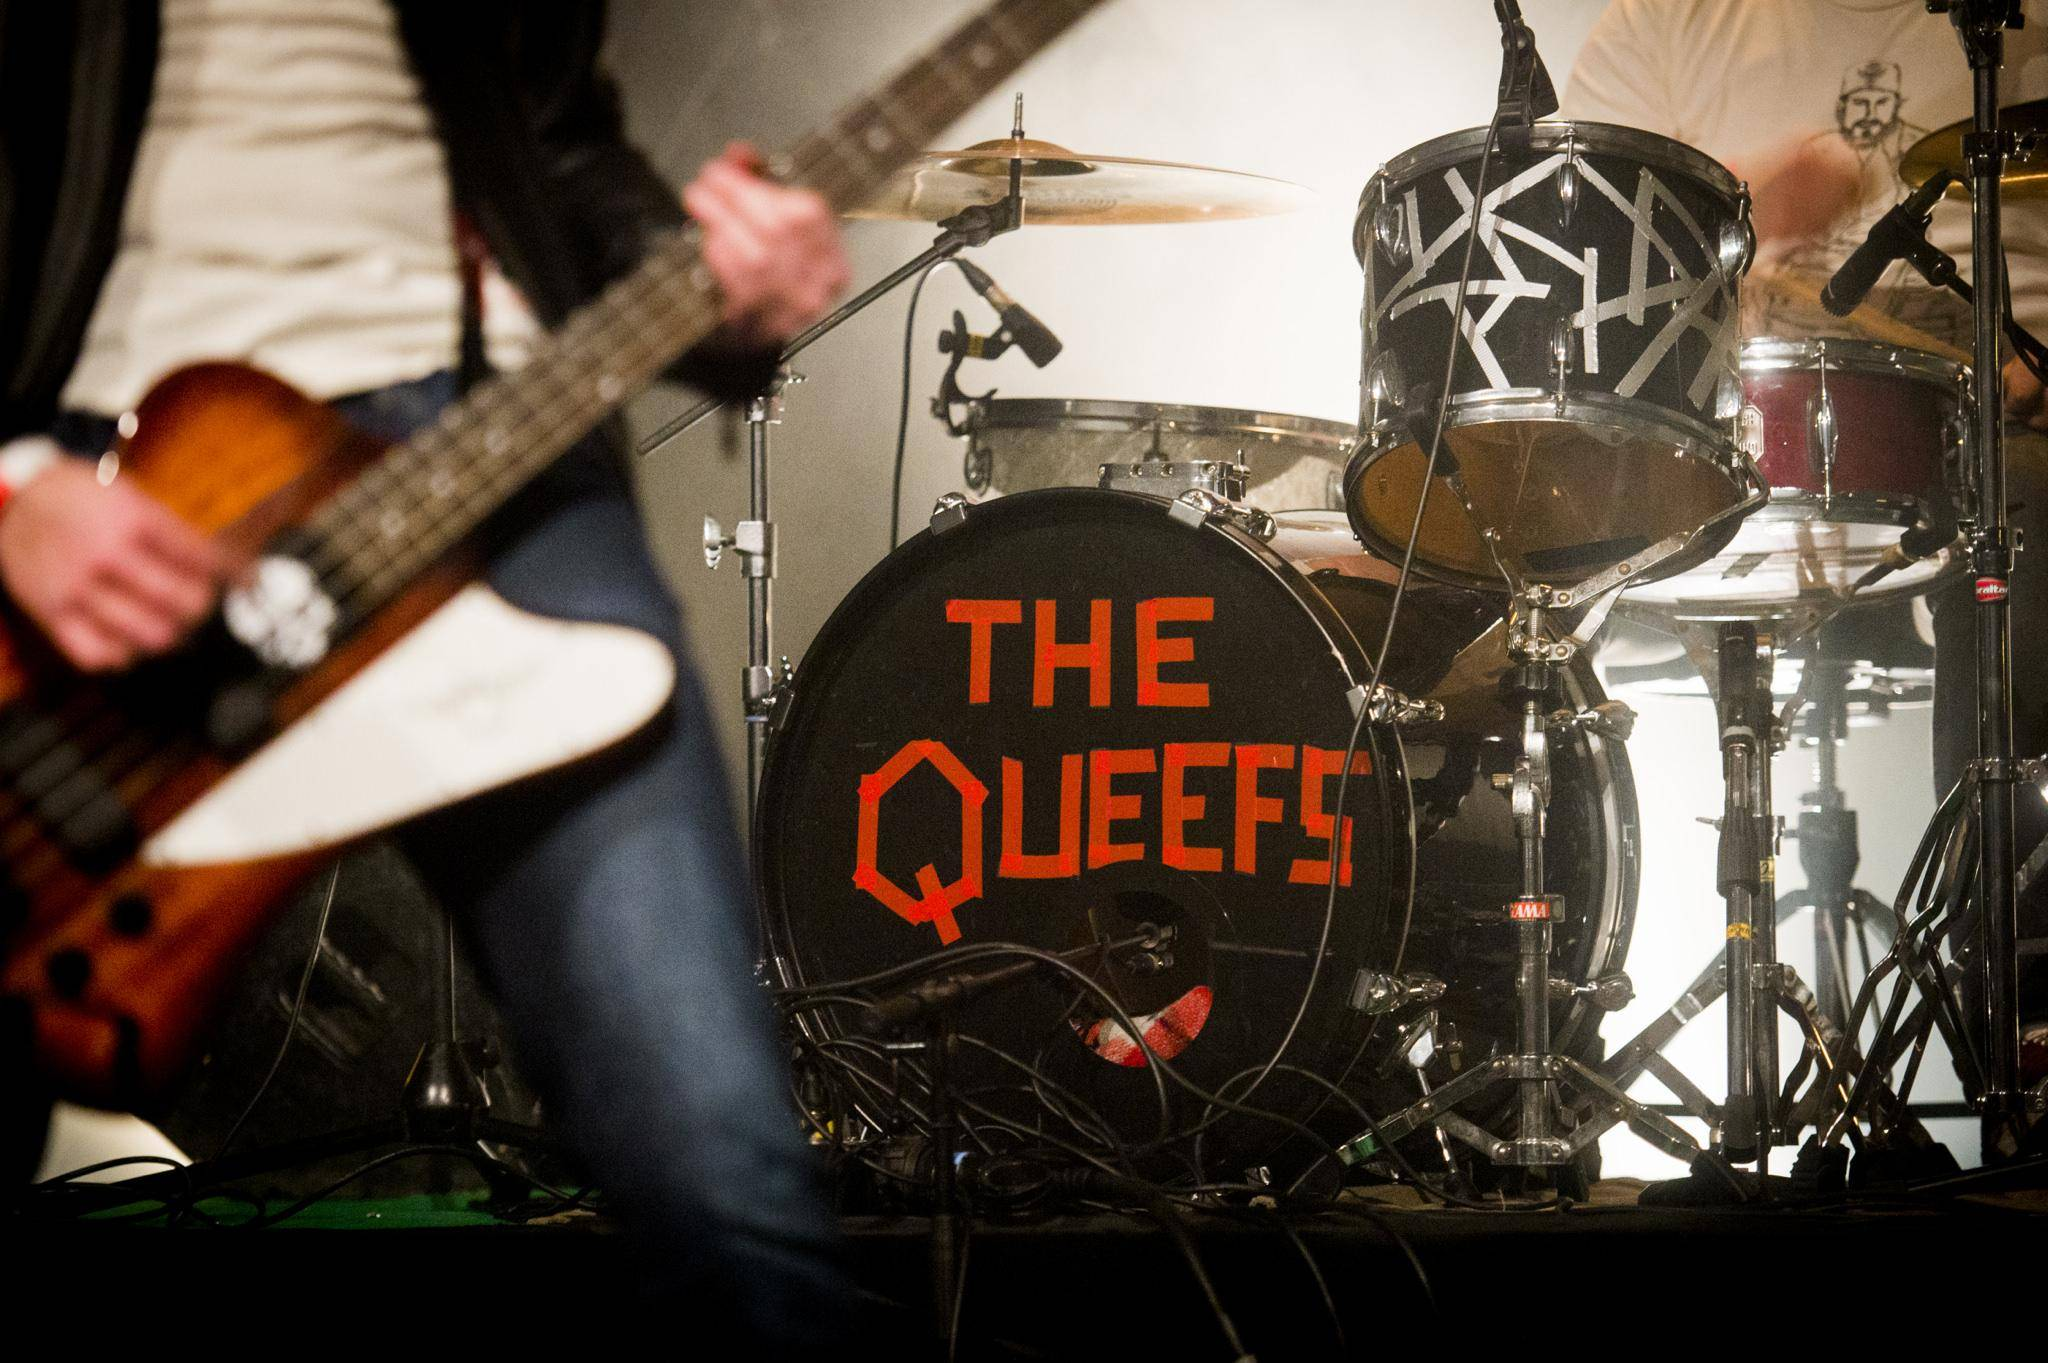 The Queefs